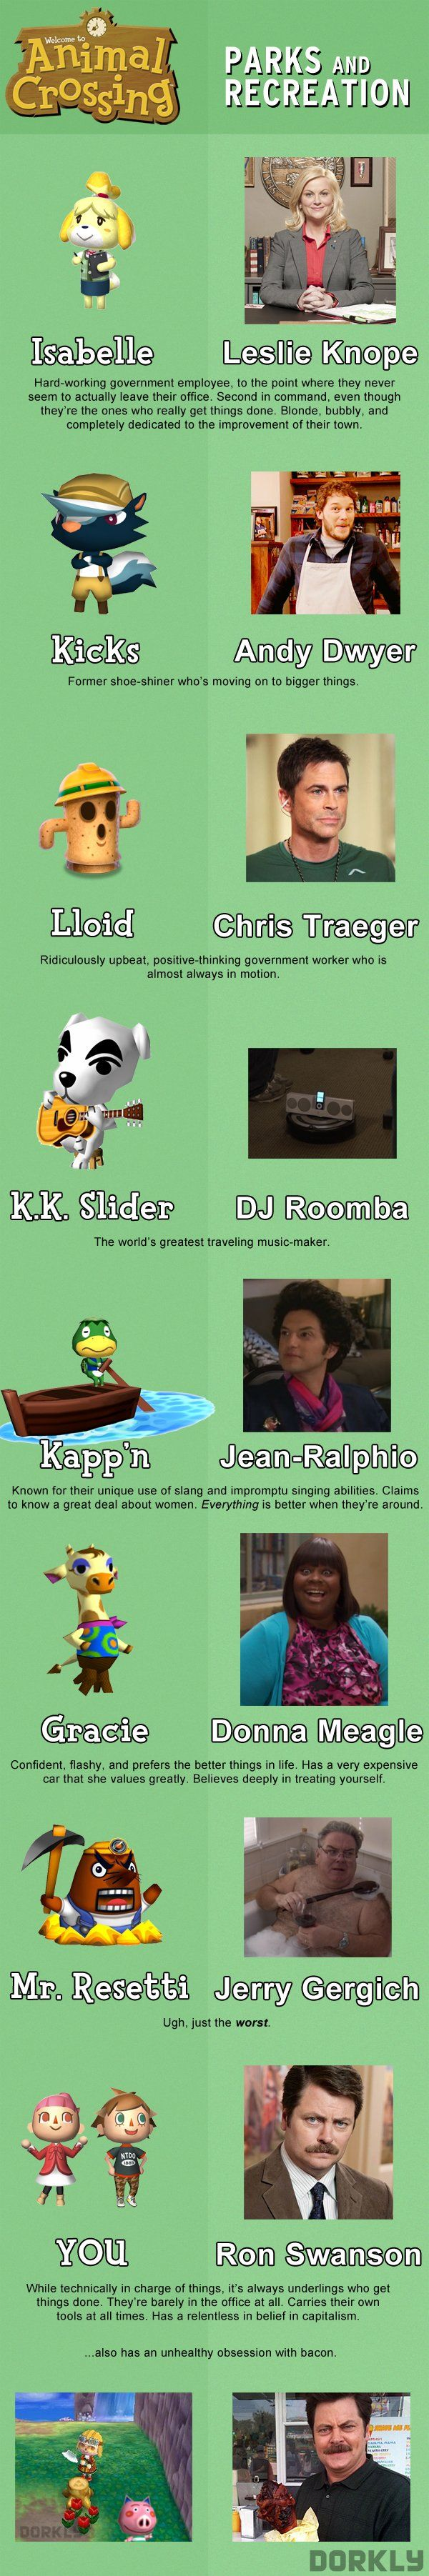 Animal Crossing and Parks & Recreation have similar characters